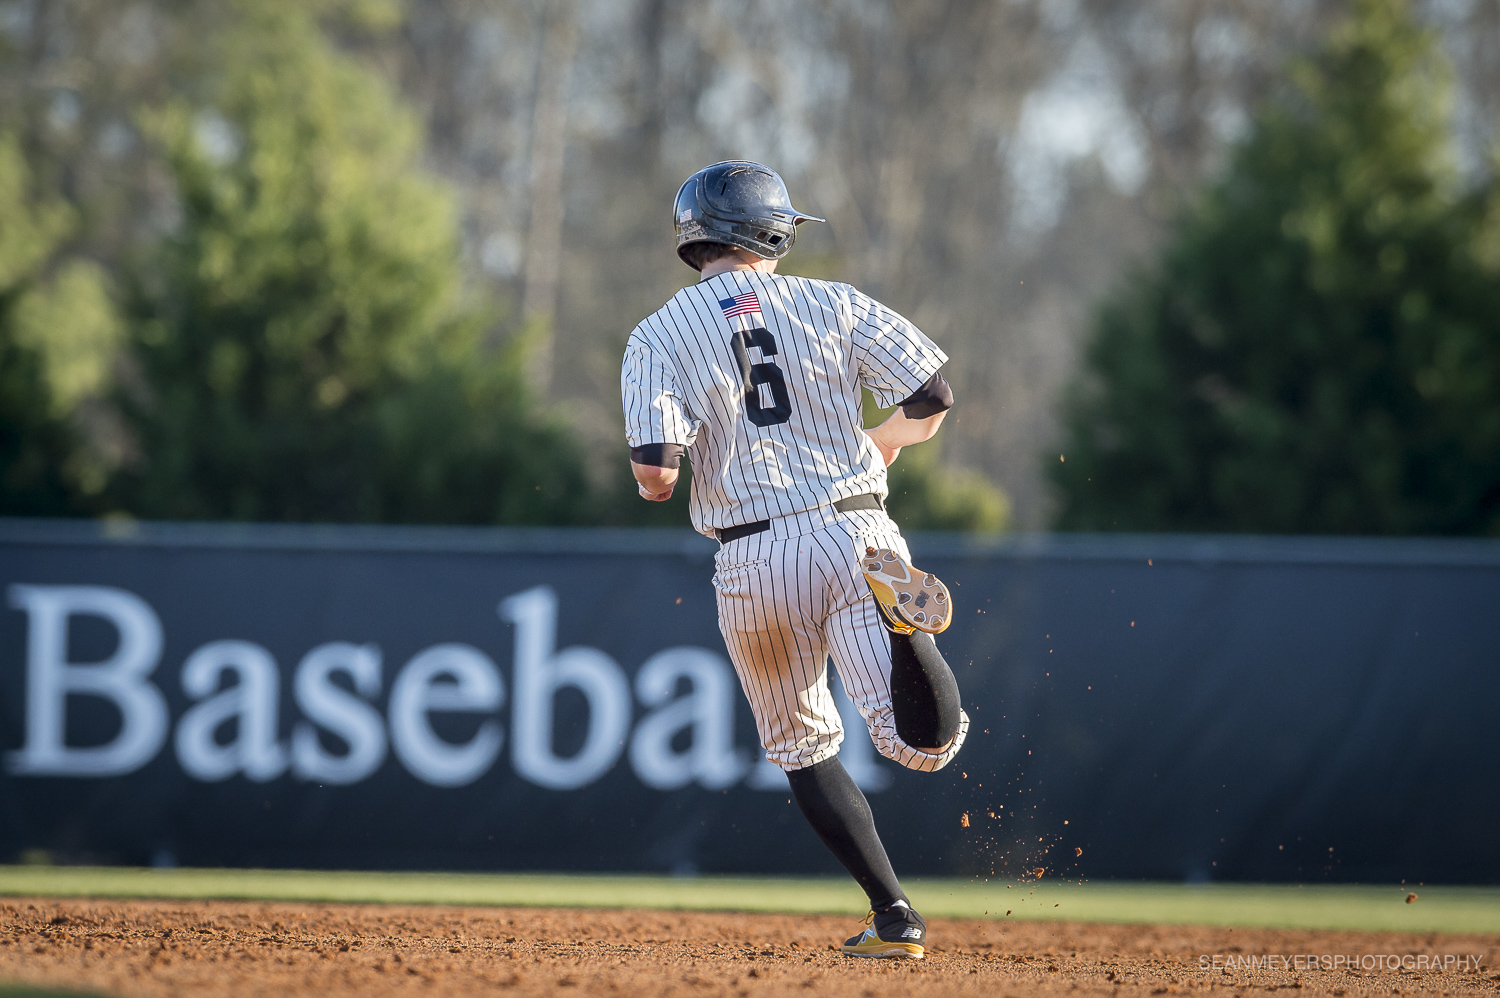 Cody McKenzie rounding second base. Photo courtesy of Sean Meyers